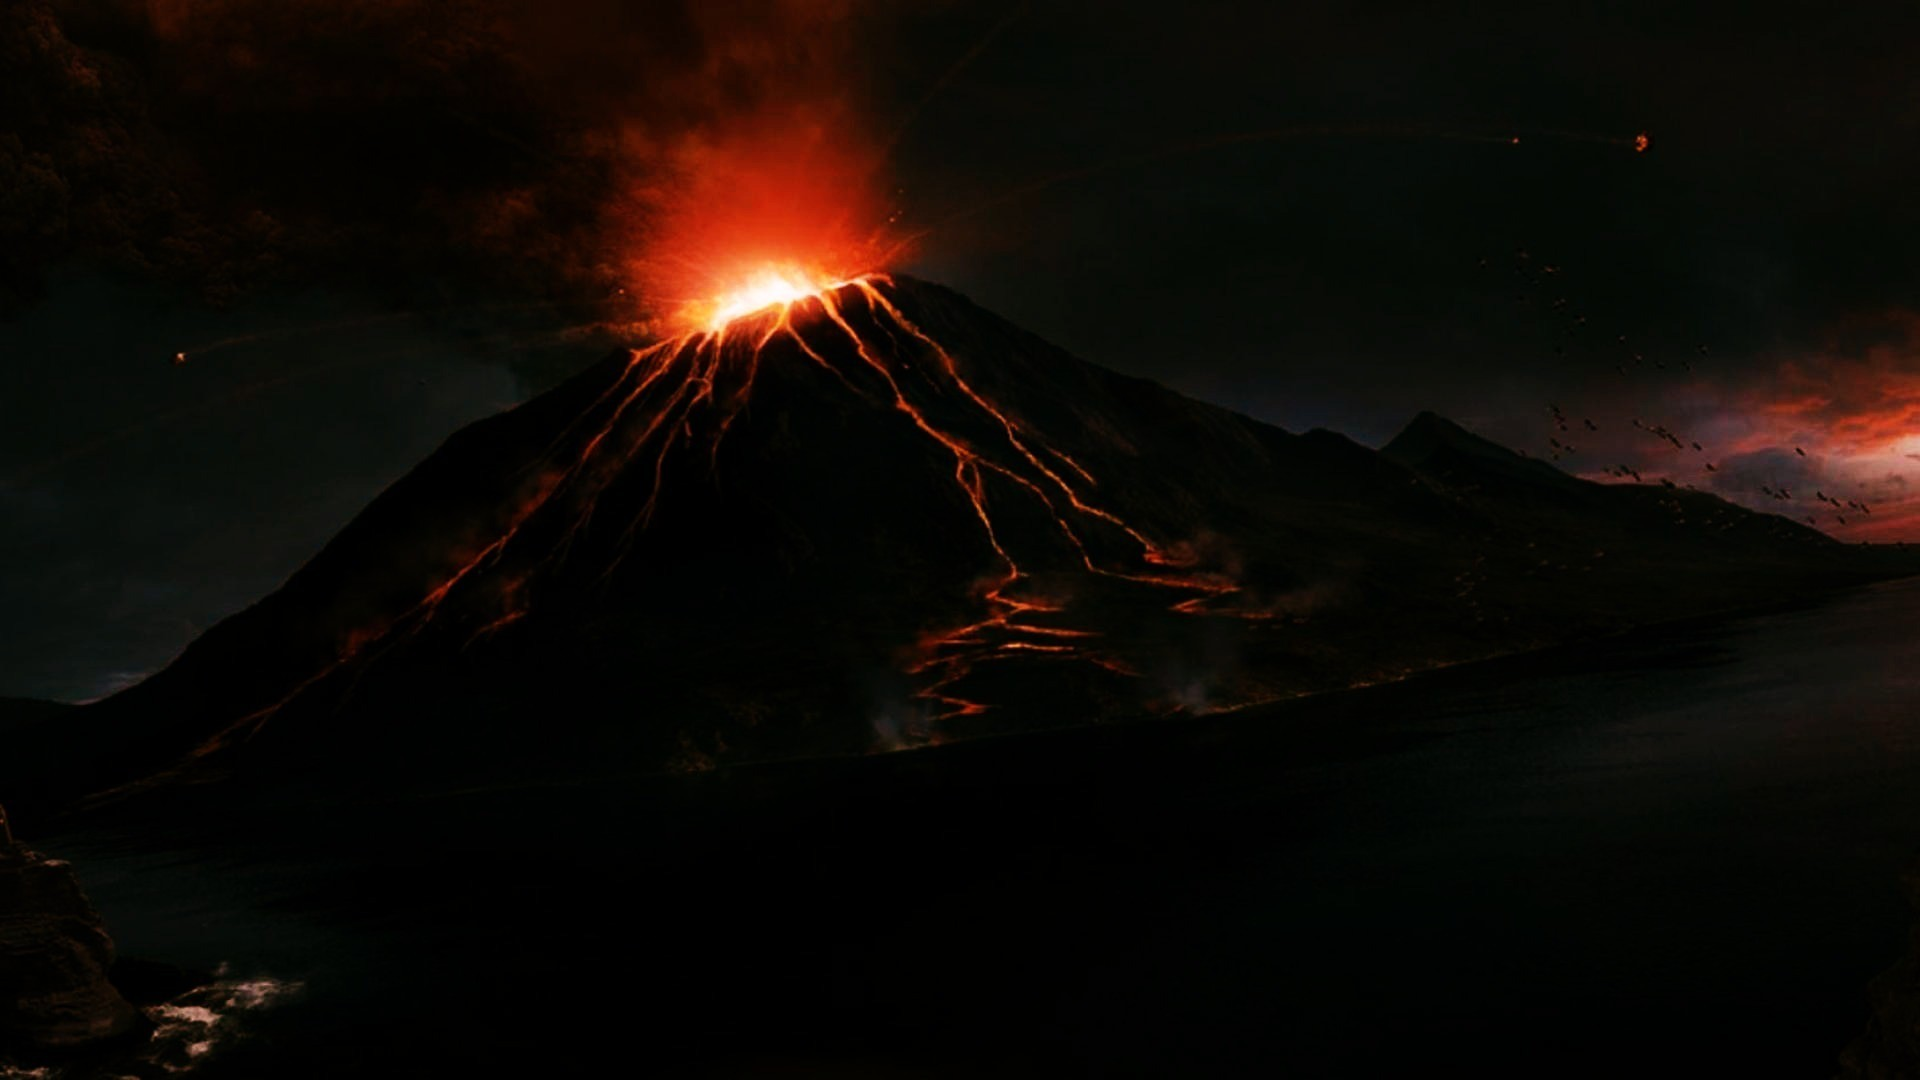 Volcano Tag – Night Volcano BEAUTY NATURE MOUNTIANS Mountain Desktop  Pictures for HD 16:9